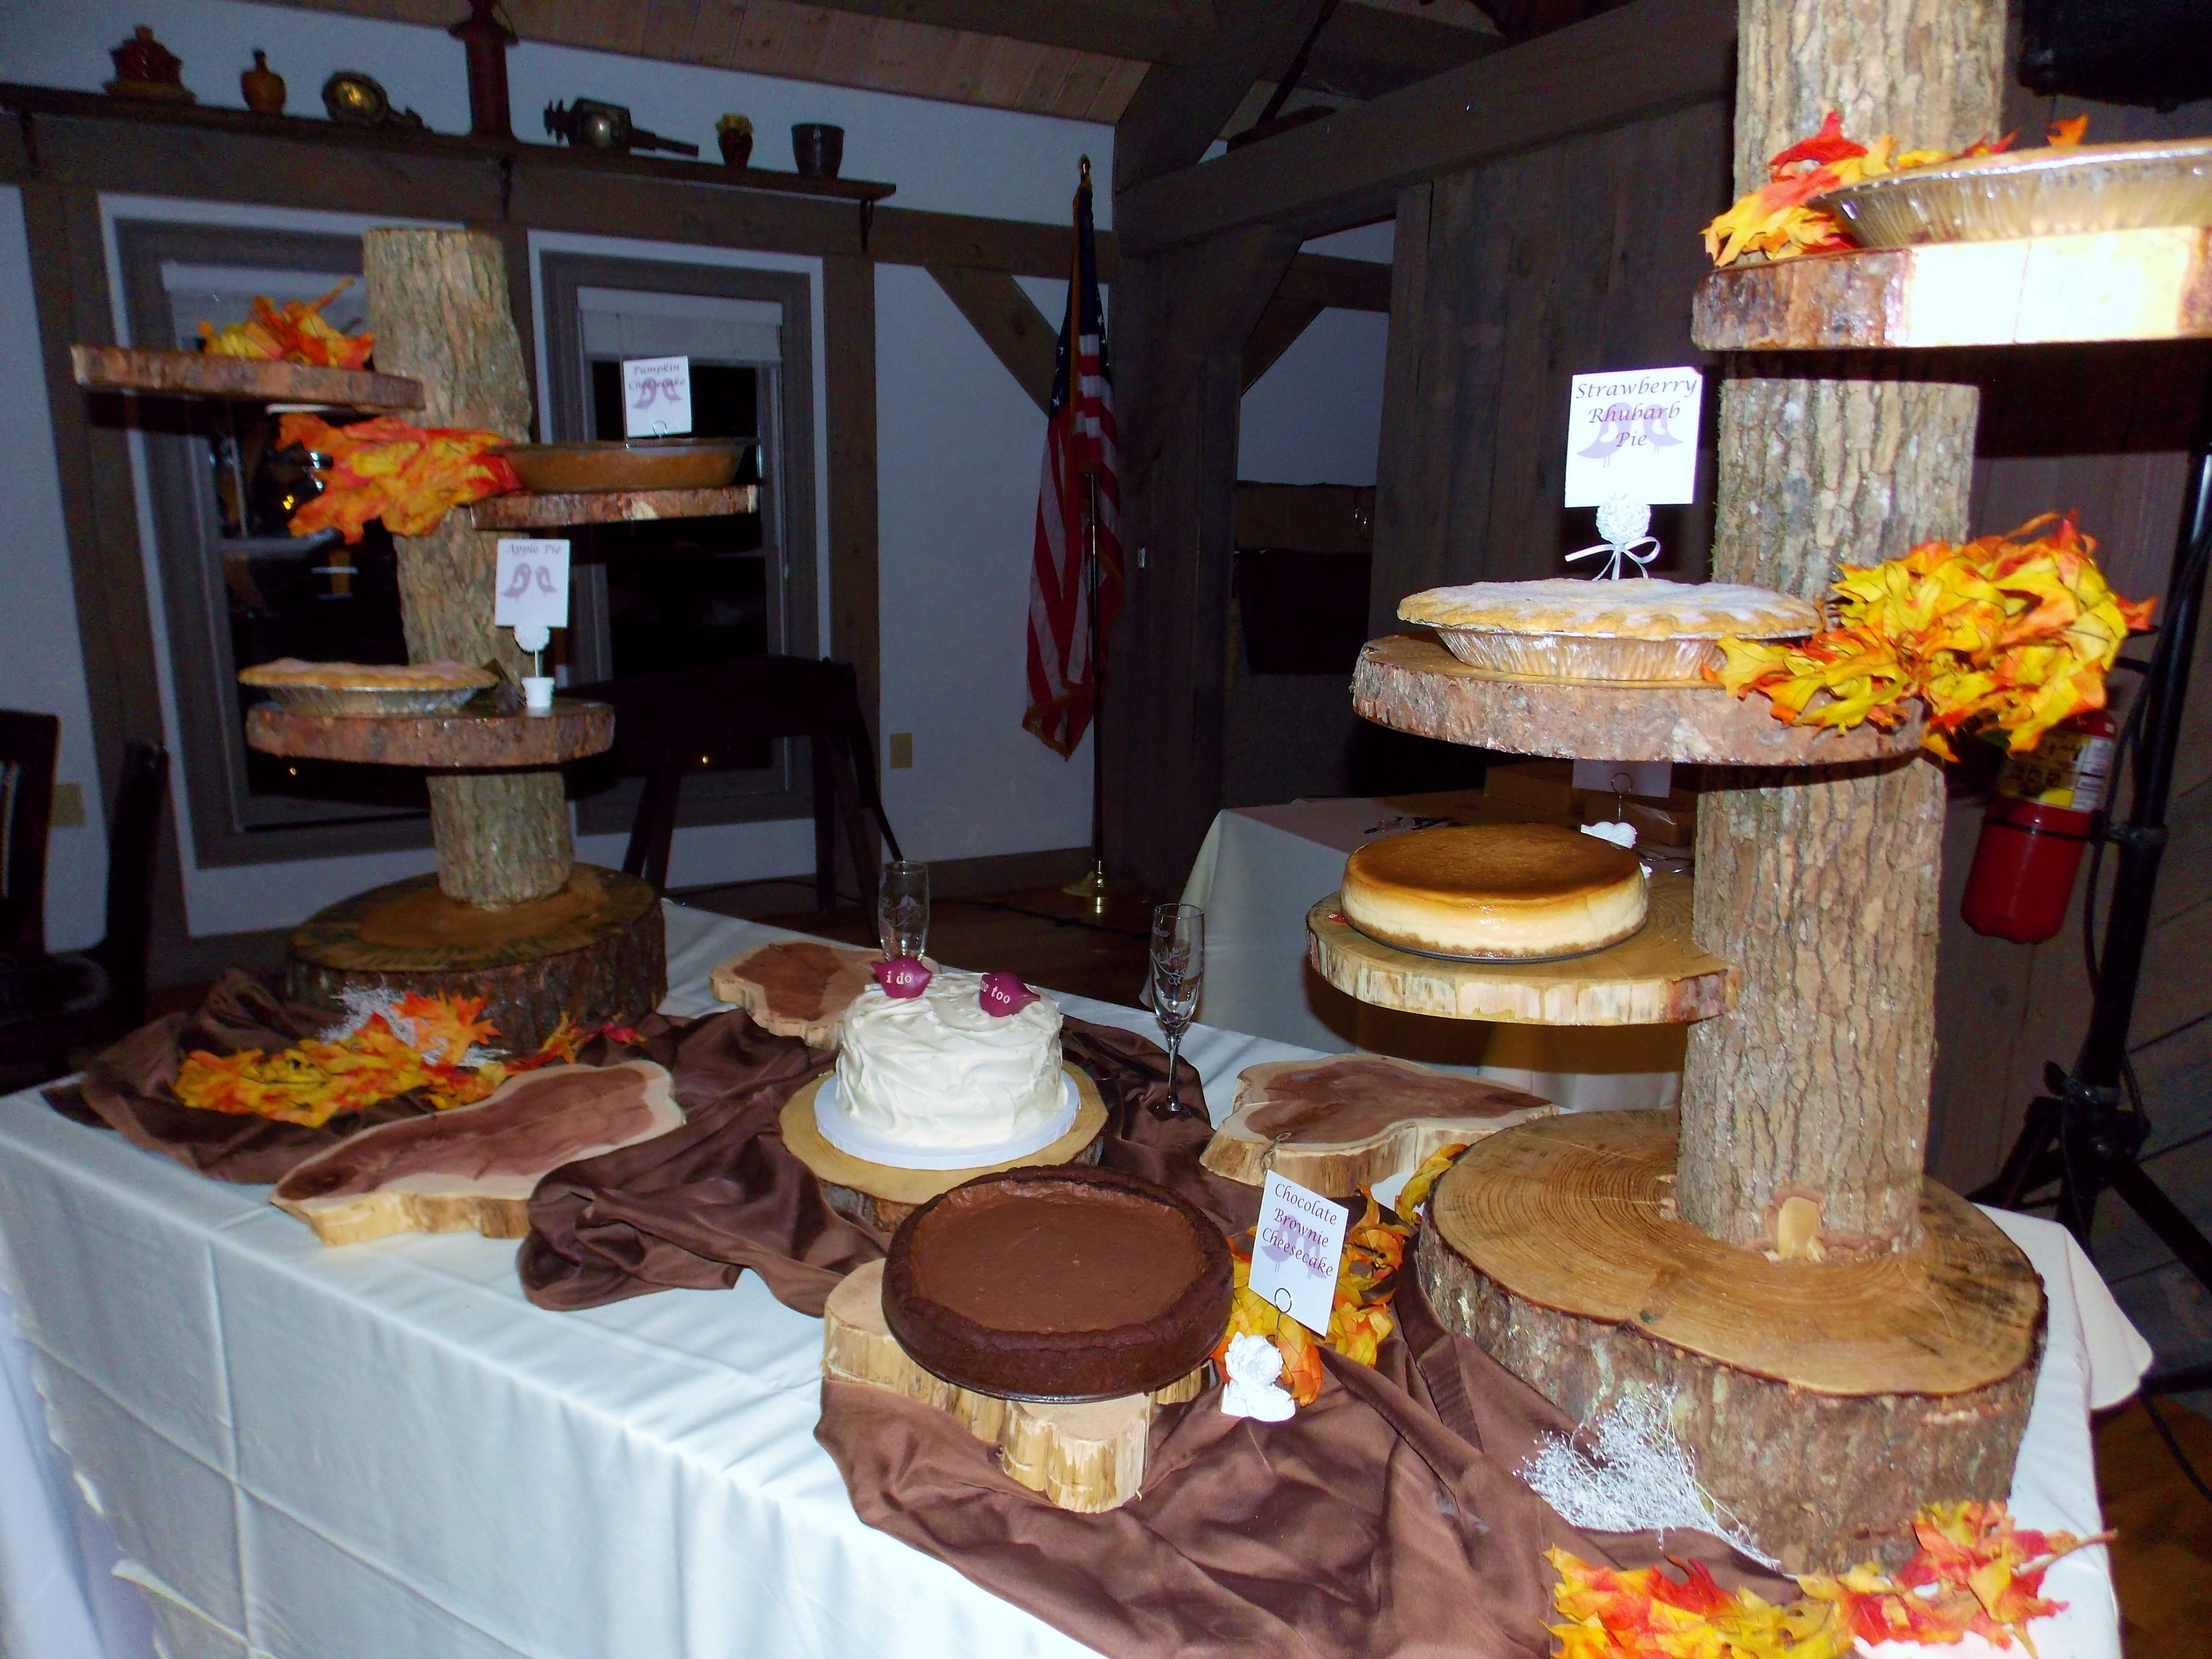 The trend has been getting away from the traditional wedding cake for a while. This is the first time I have seen pie and cheesecake. The groom made these great pie stands... Well done Andrew!